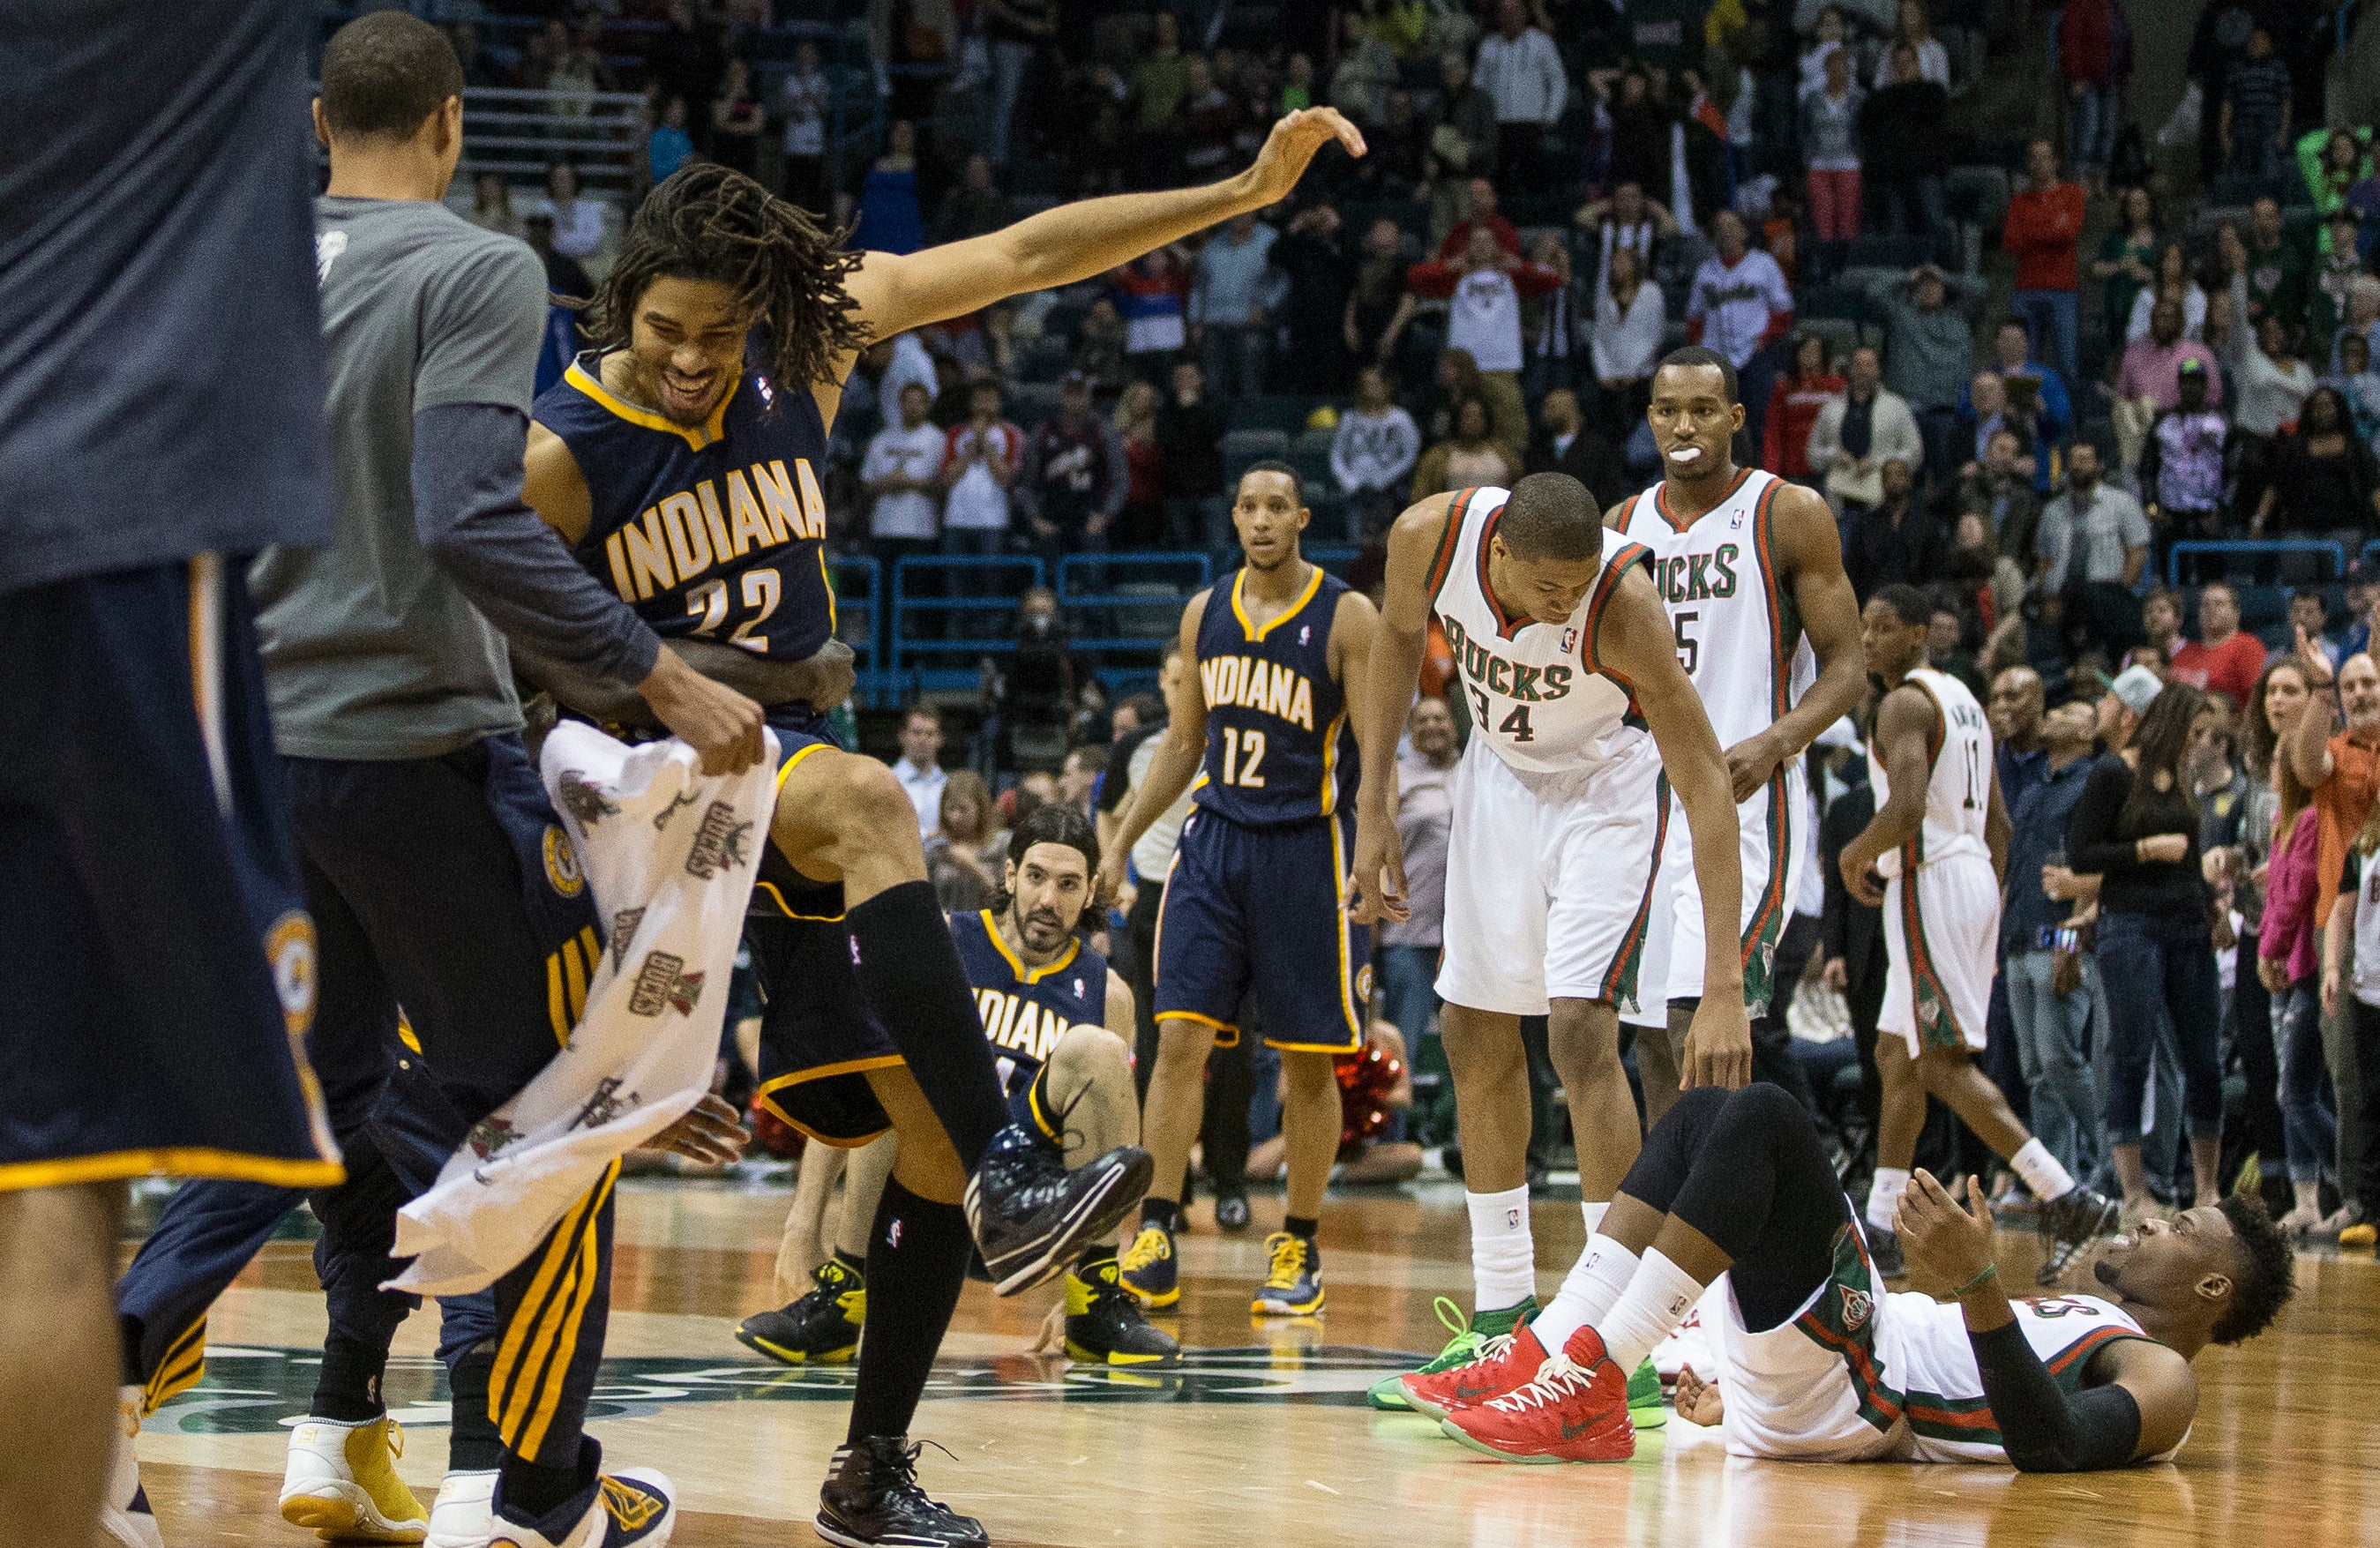 Pacers Bench All Five Starters, Still Beat Bucks